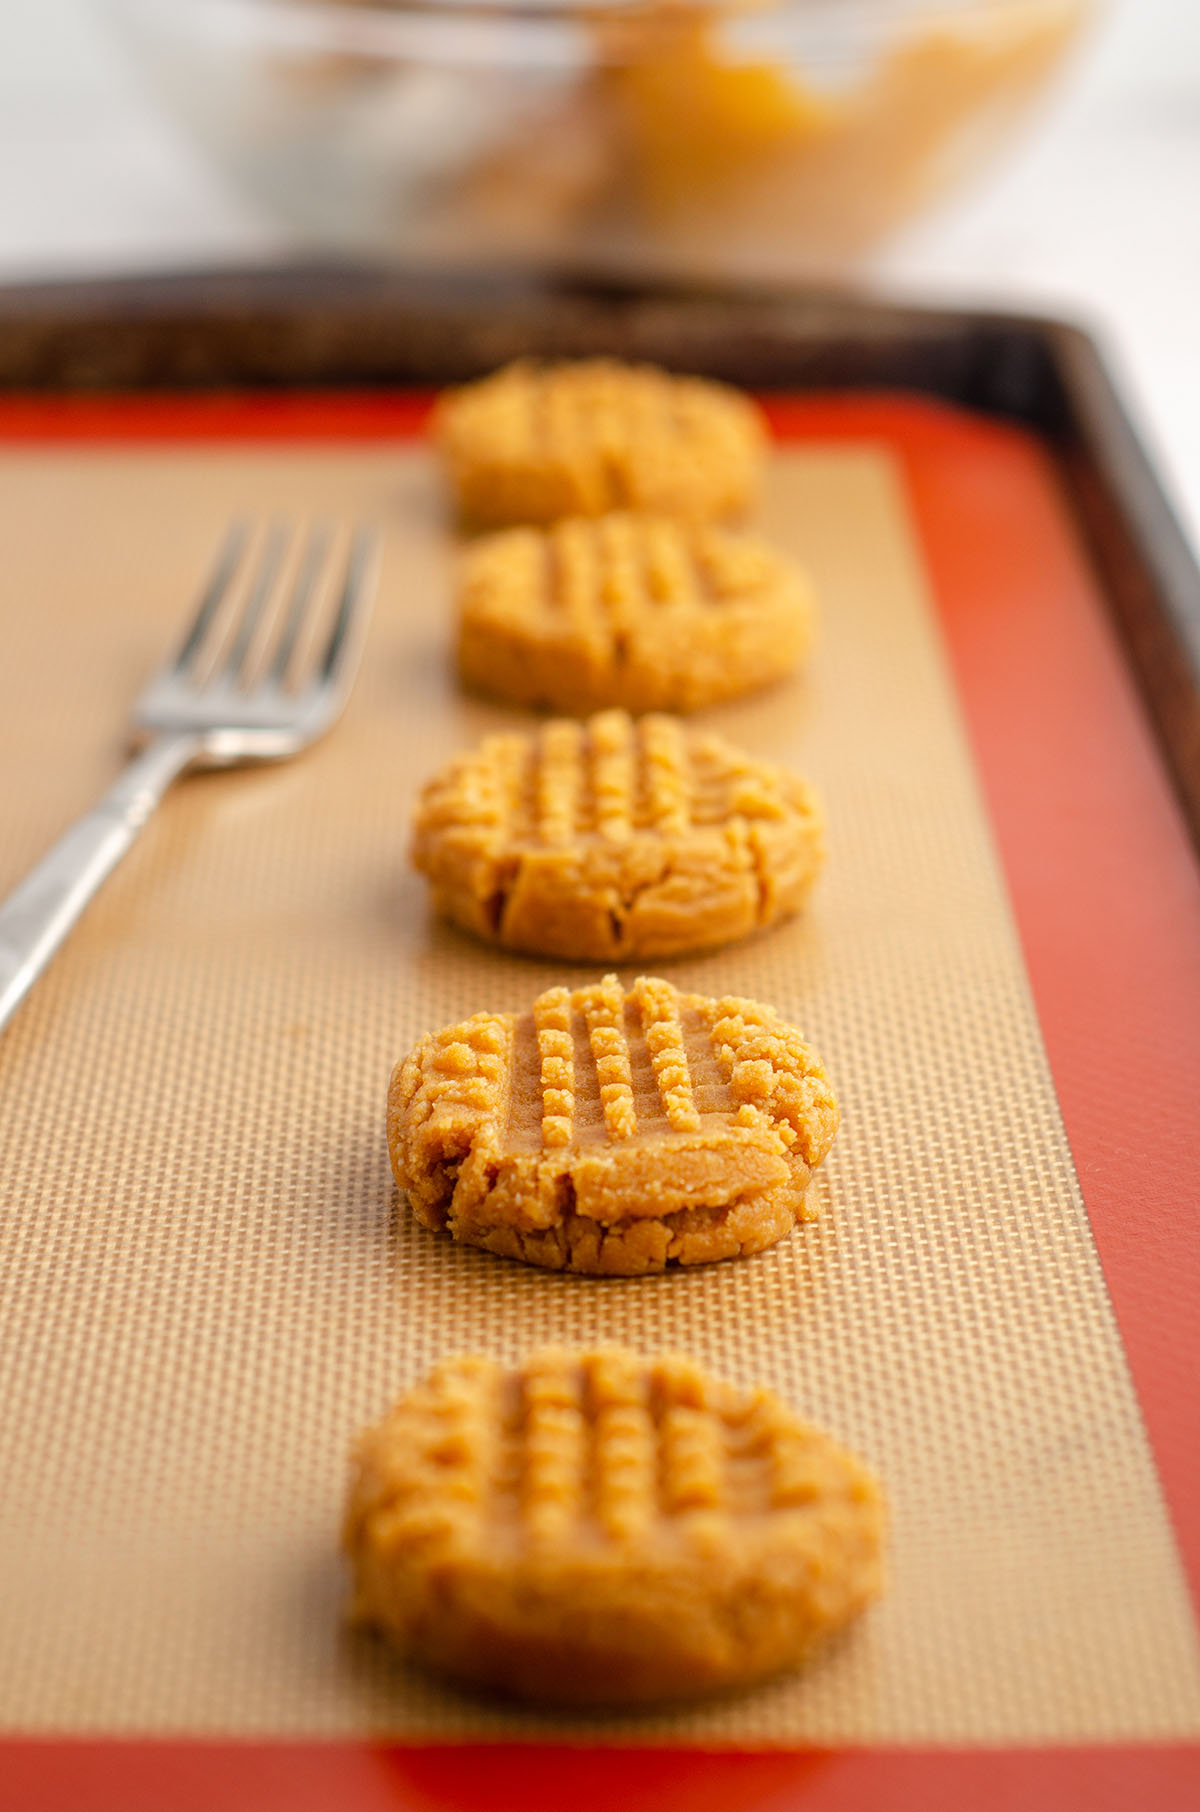 vegan and gluten-free peanut butter cookies on a baking sheet ready to bake